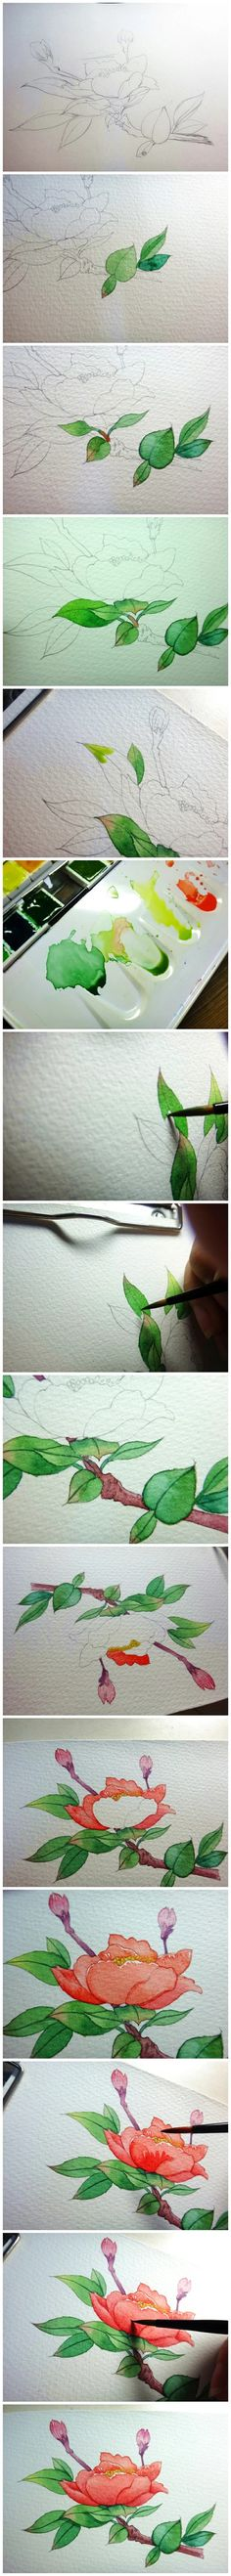 Step by step leaf and flower painting in watercolor.